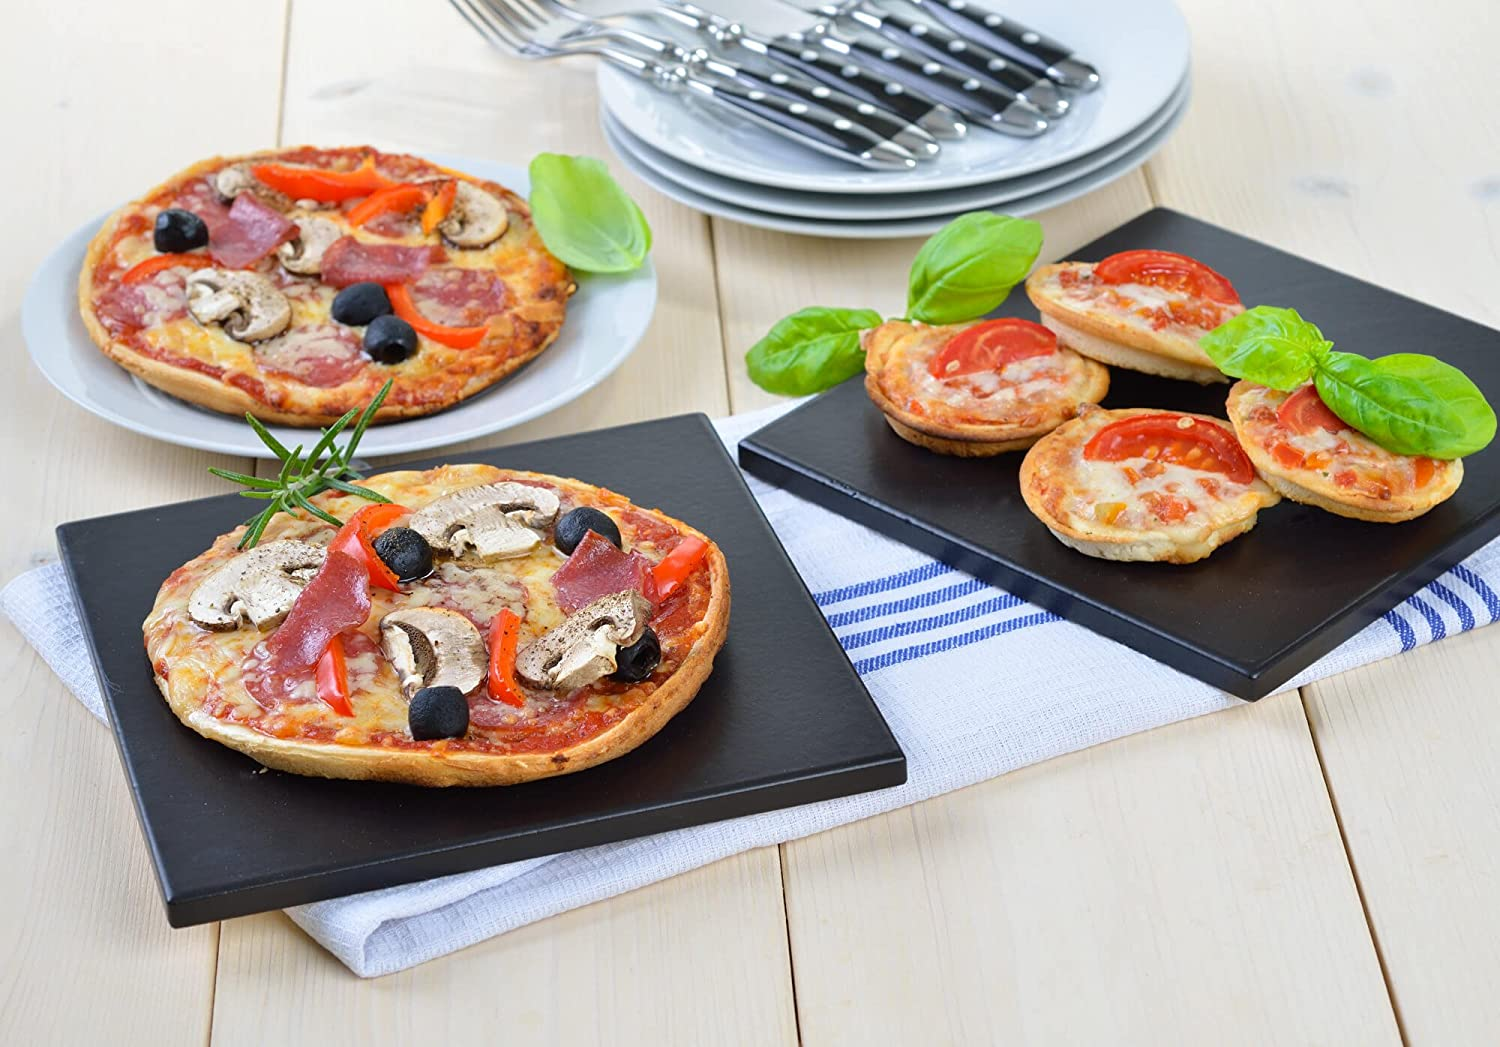 Baking Set for Oven Use Set of 4 natural GR/ÄWE Stone Pizza Boards